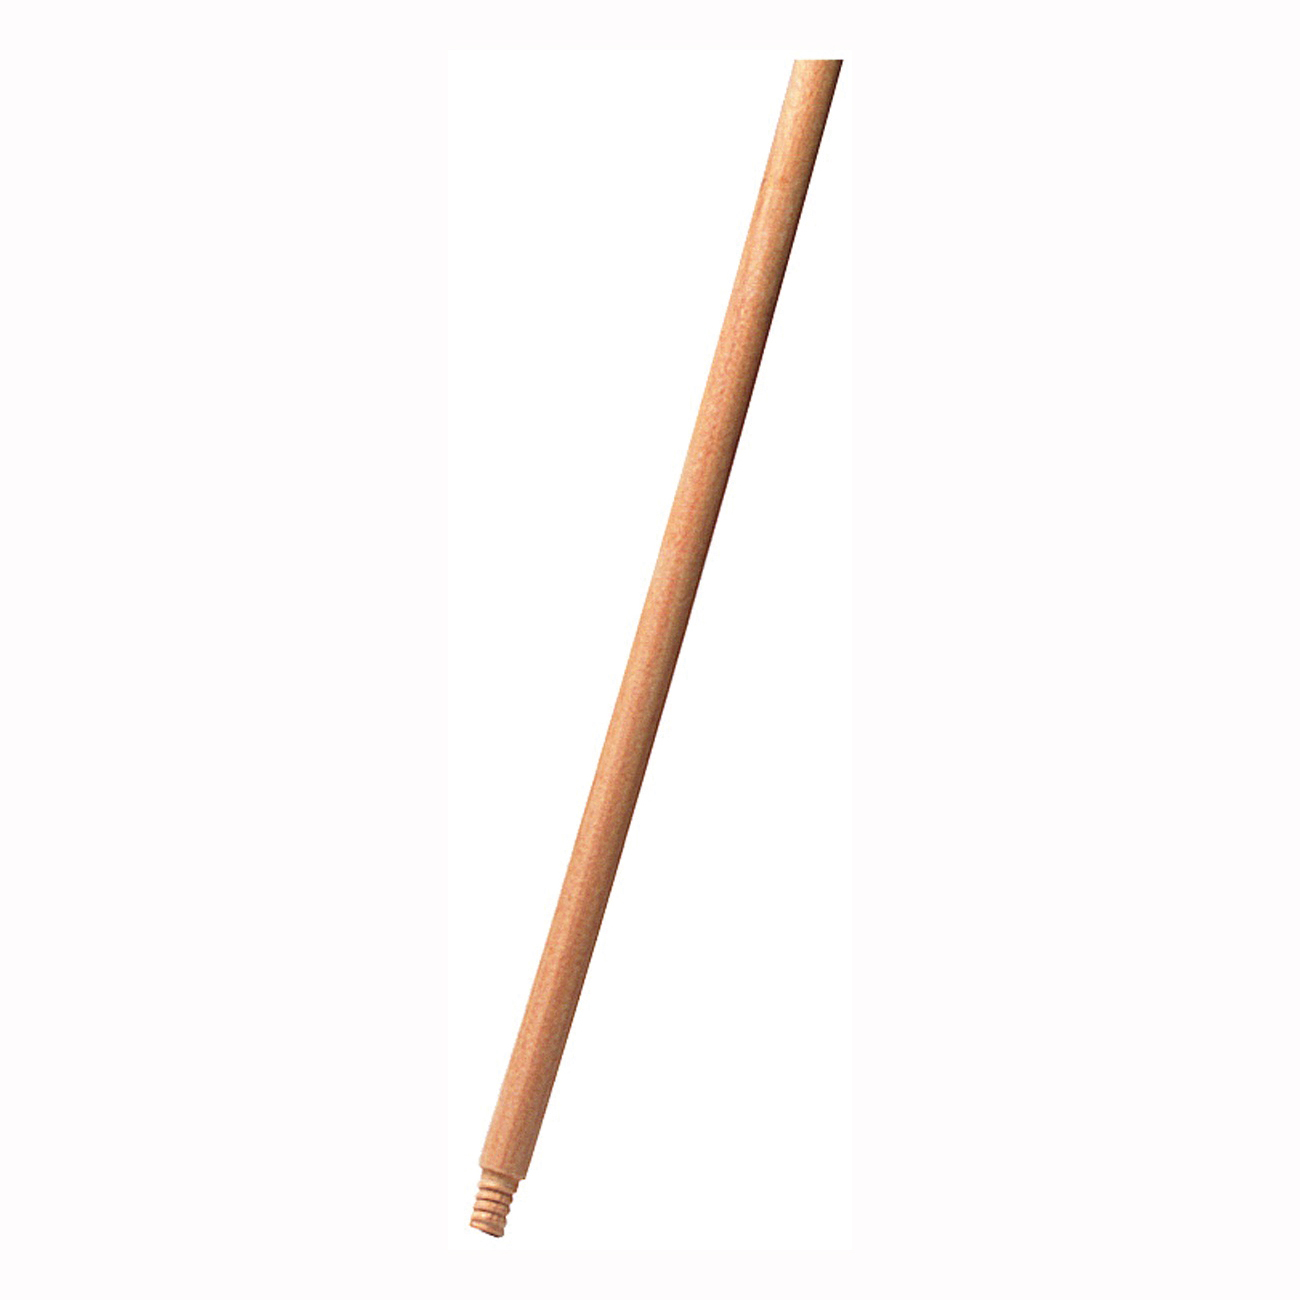 Picture of Rubbermaid FG636100LAC Broom Handle, 1-5/16 in Dia, 60 in L, Threaded, Wood, Natural